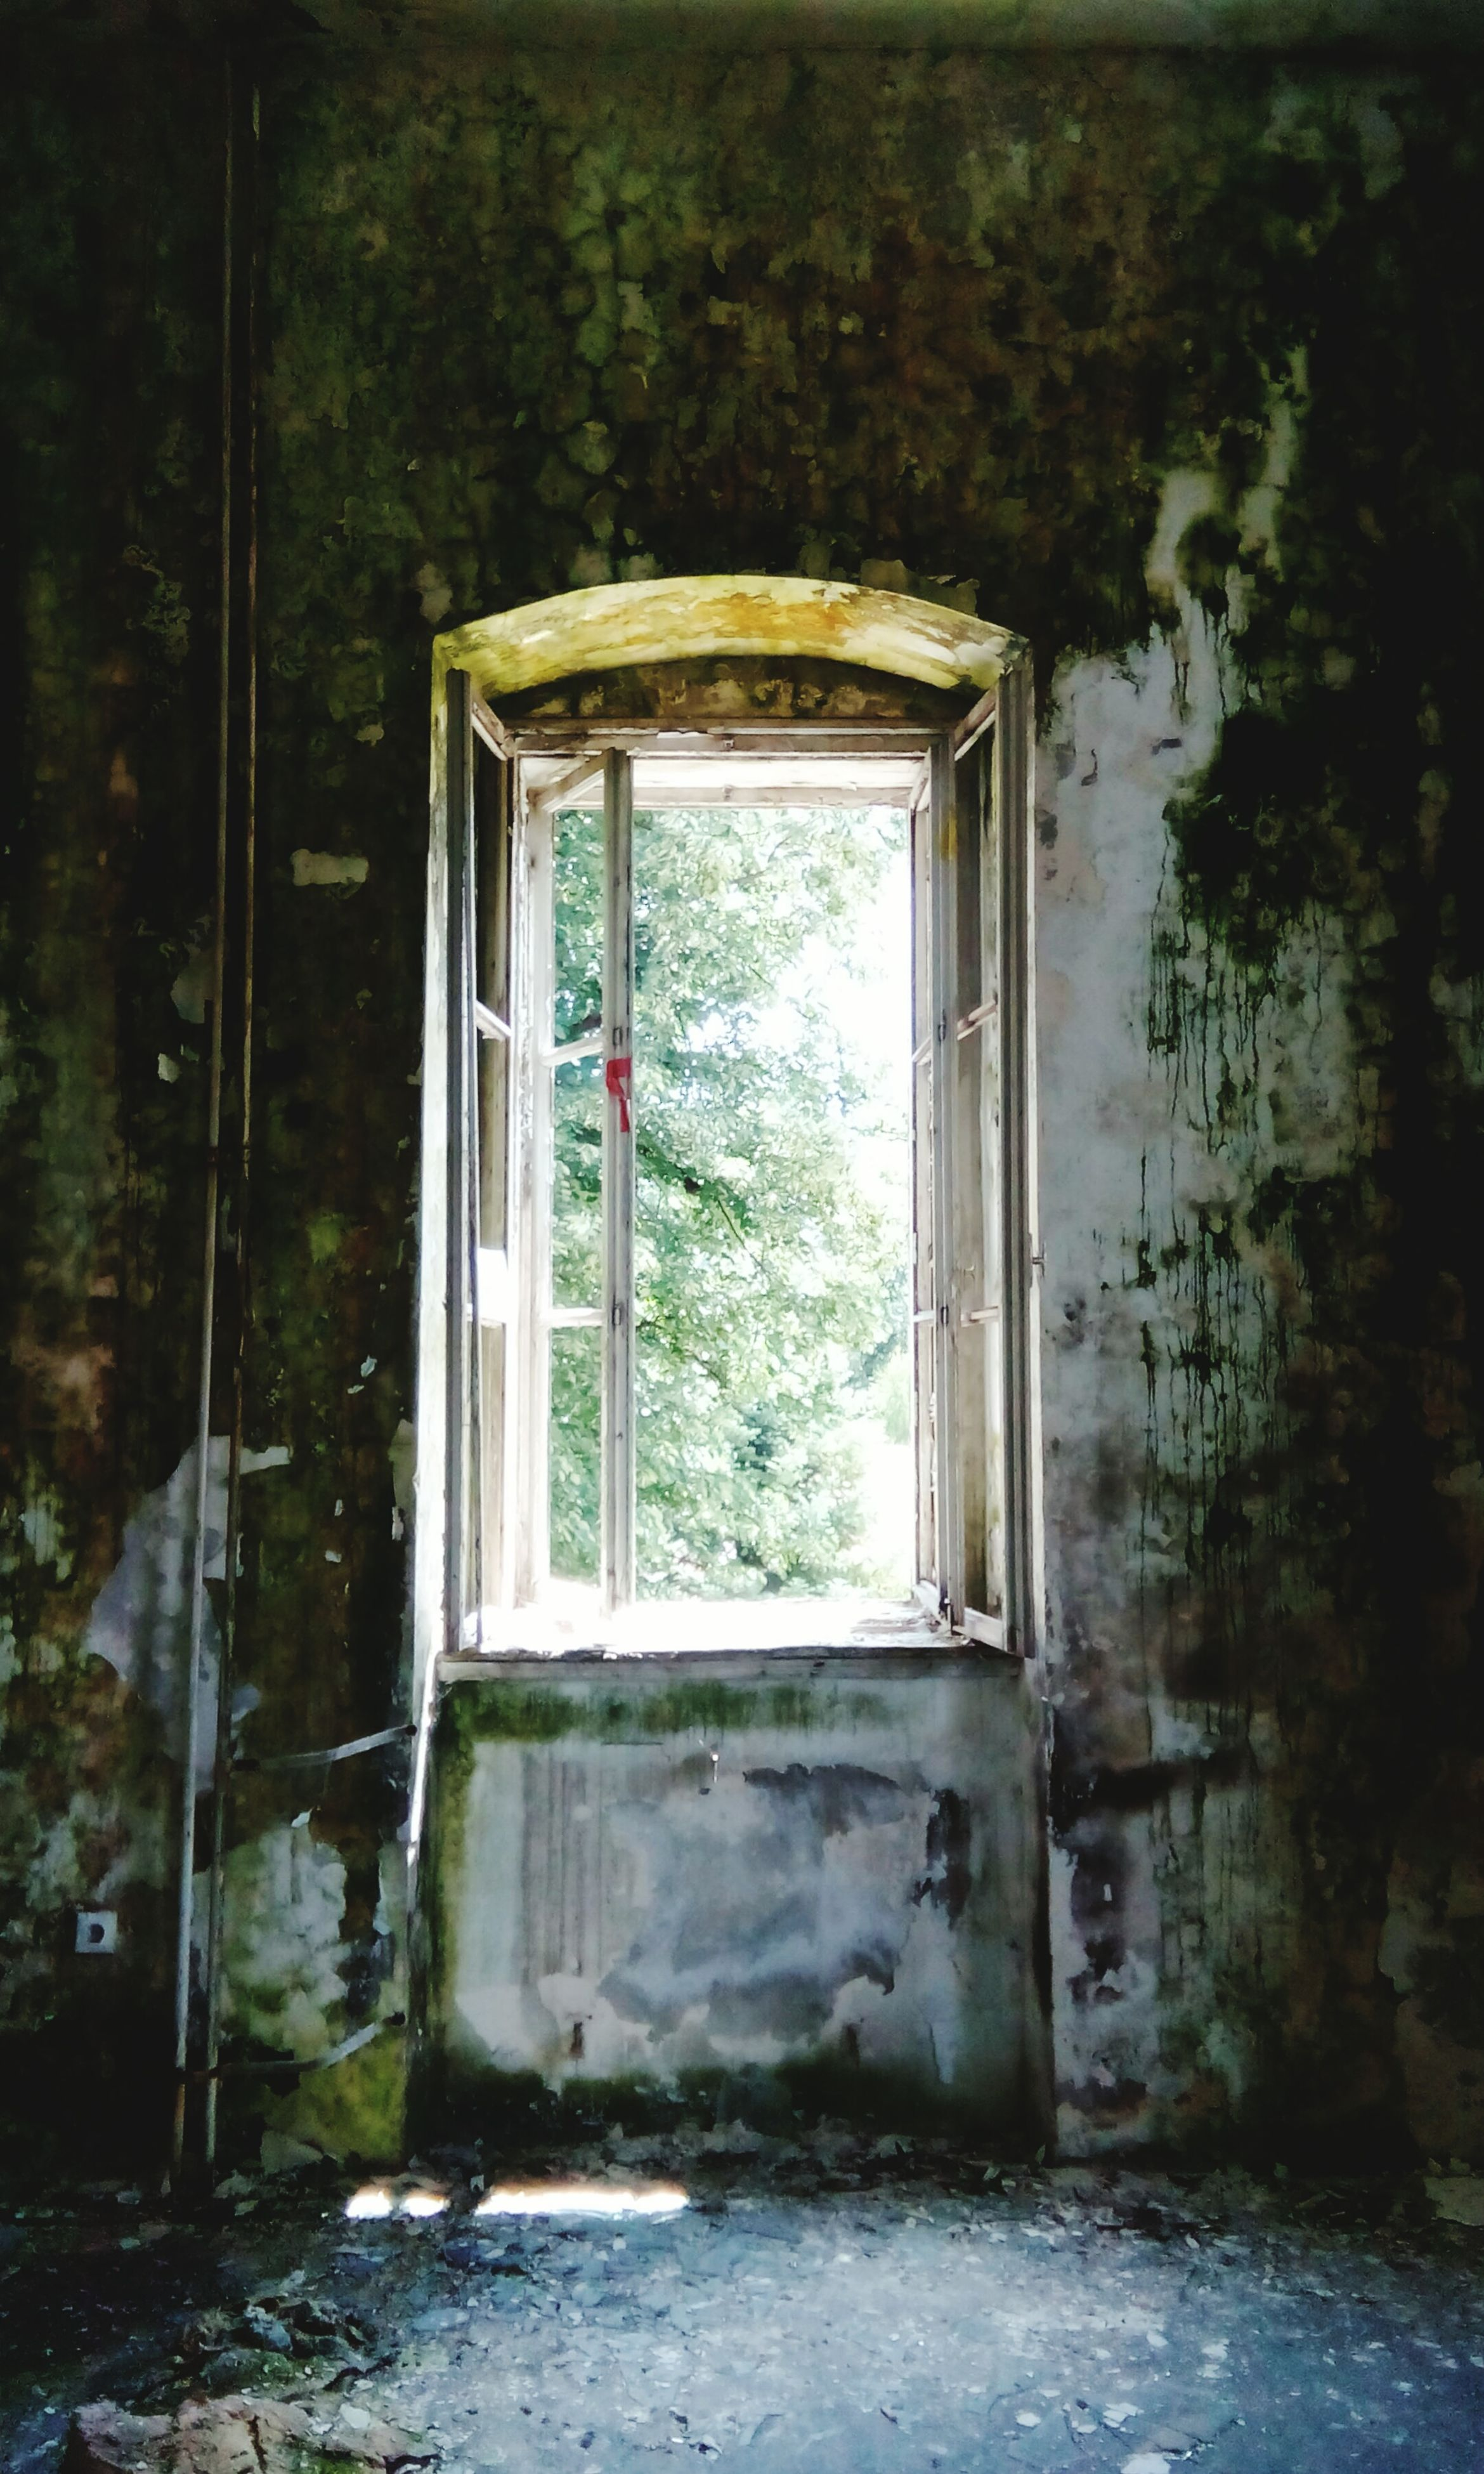 window, indoors, built structure, architecture, house, door, glass - material, closed, abandoned, transparent, open, tree, day, entrance, old, obsolete, damaged, doorway, no people, building exterior